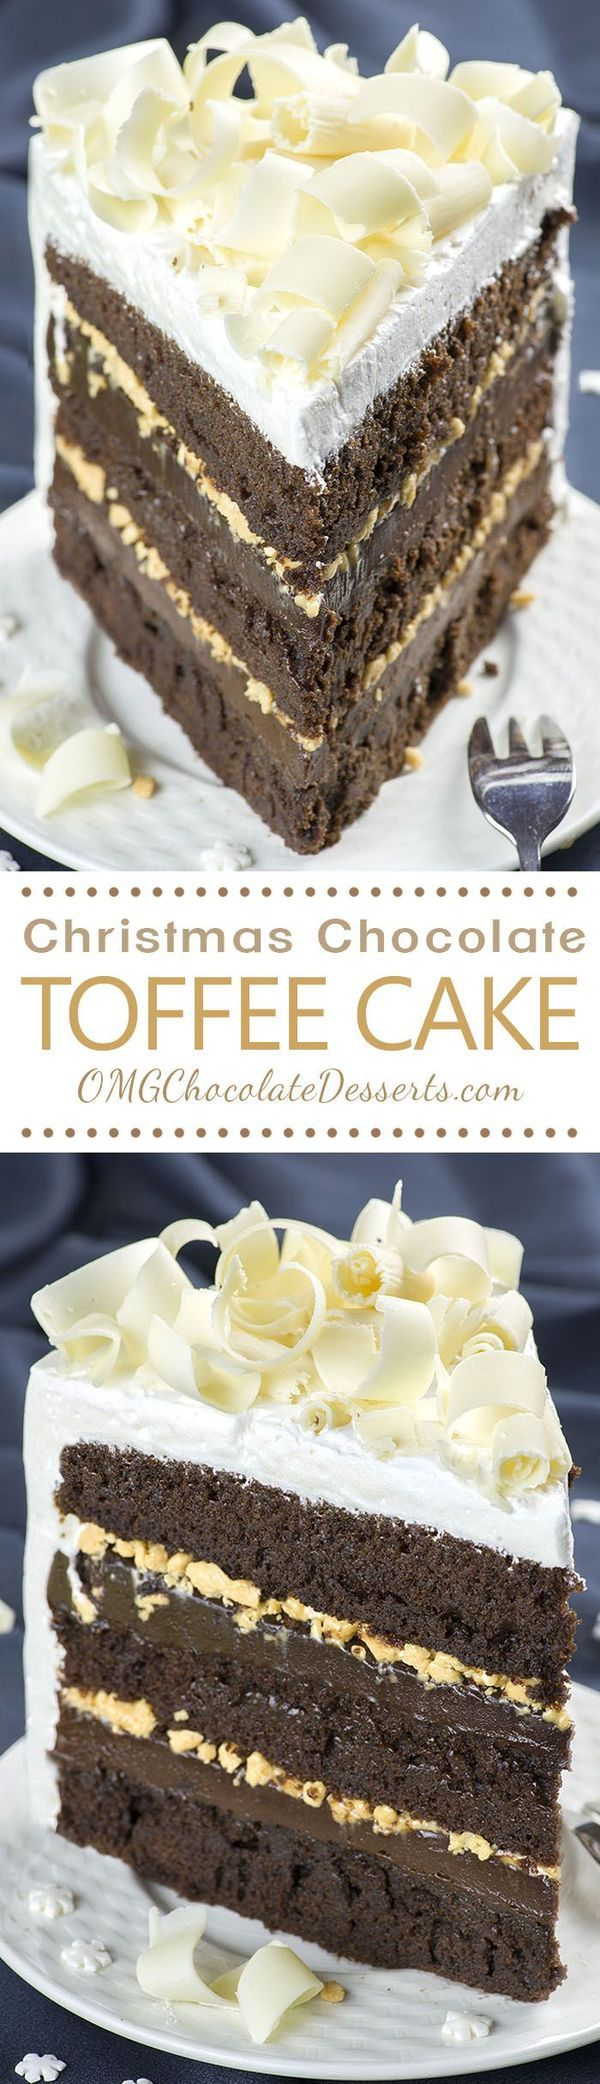 5019 best Cake images on Pinterest | Pies, Rezepte and Xmas